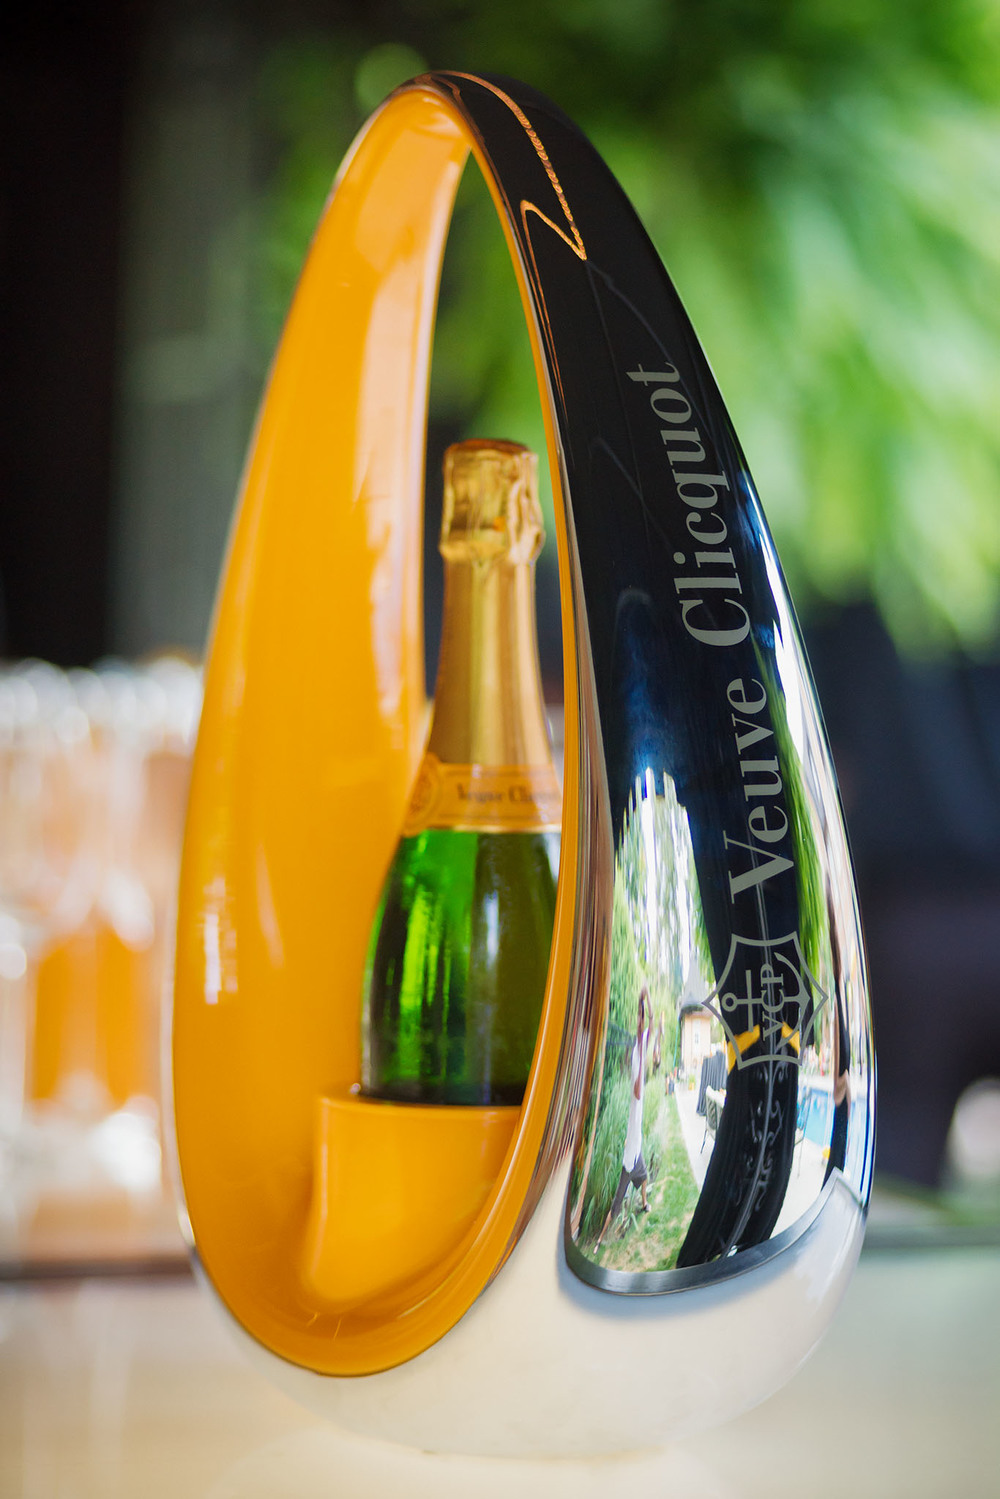 2012_08_24_VEUVE_CLICQUOT_PARTY_074.JPG